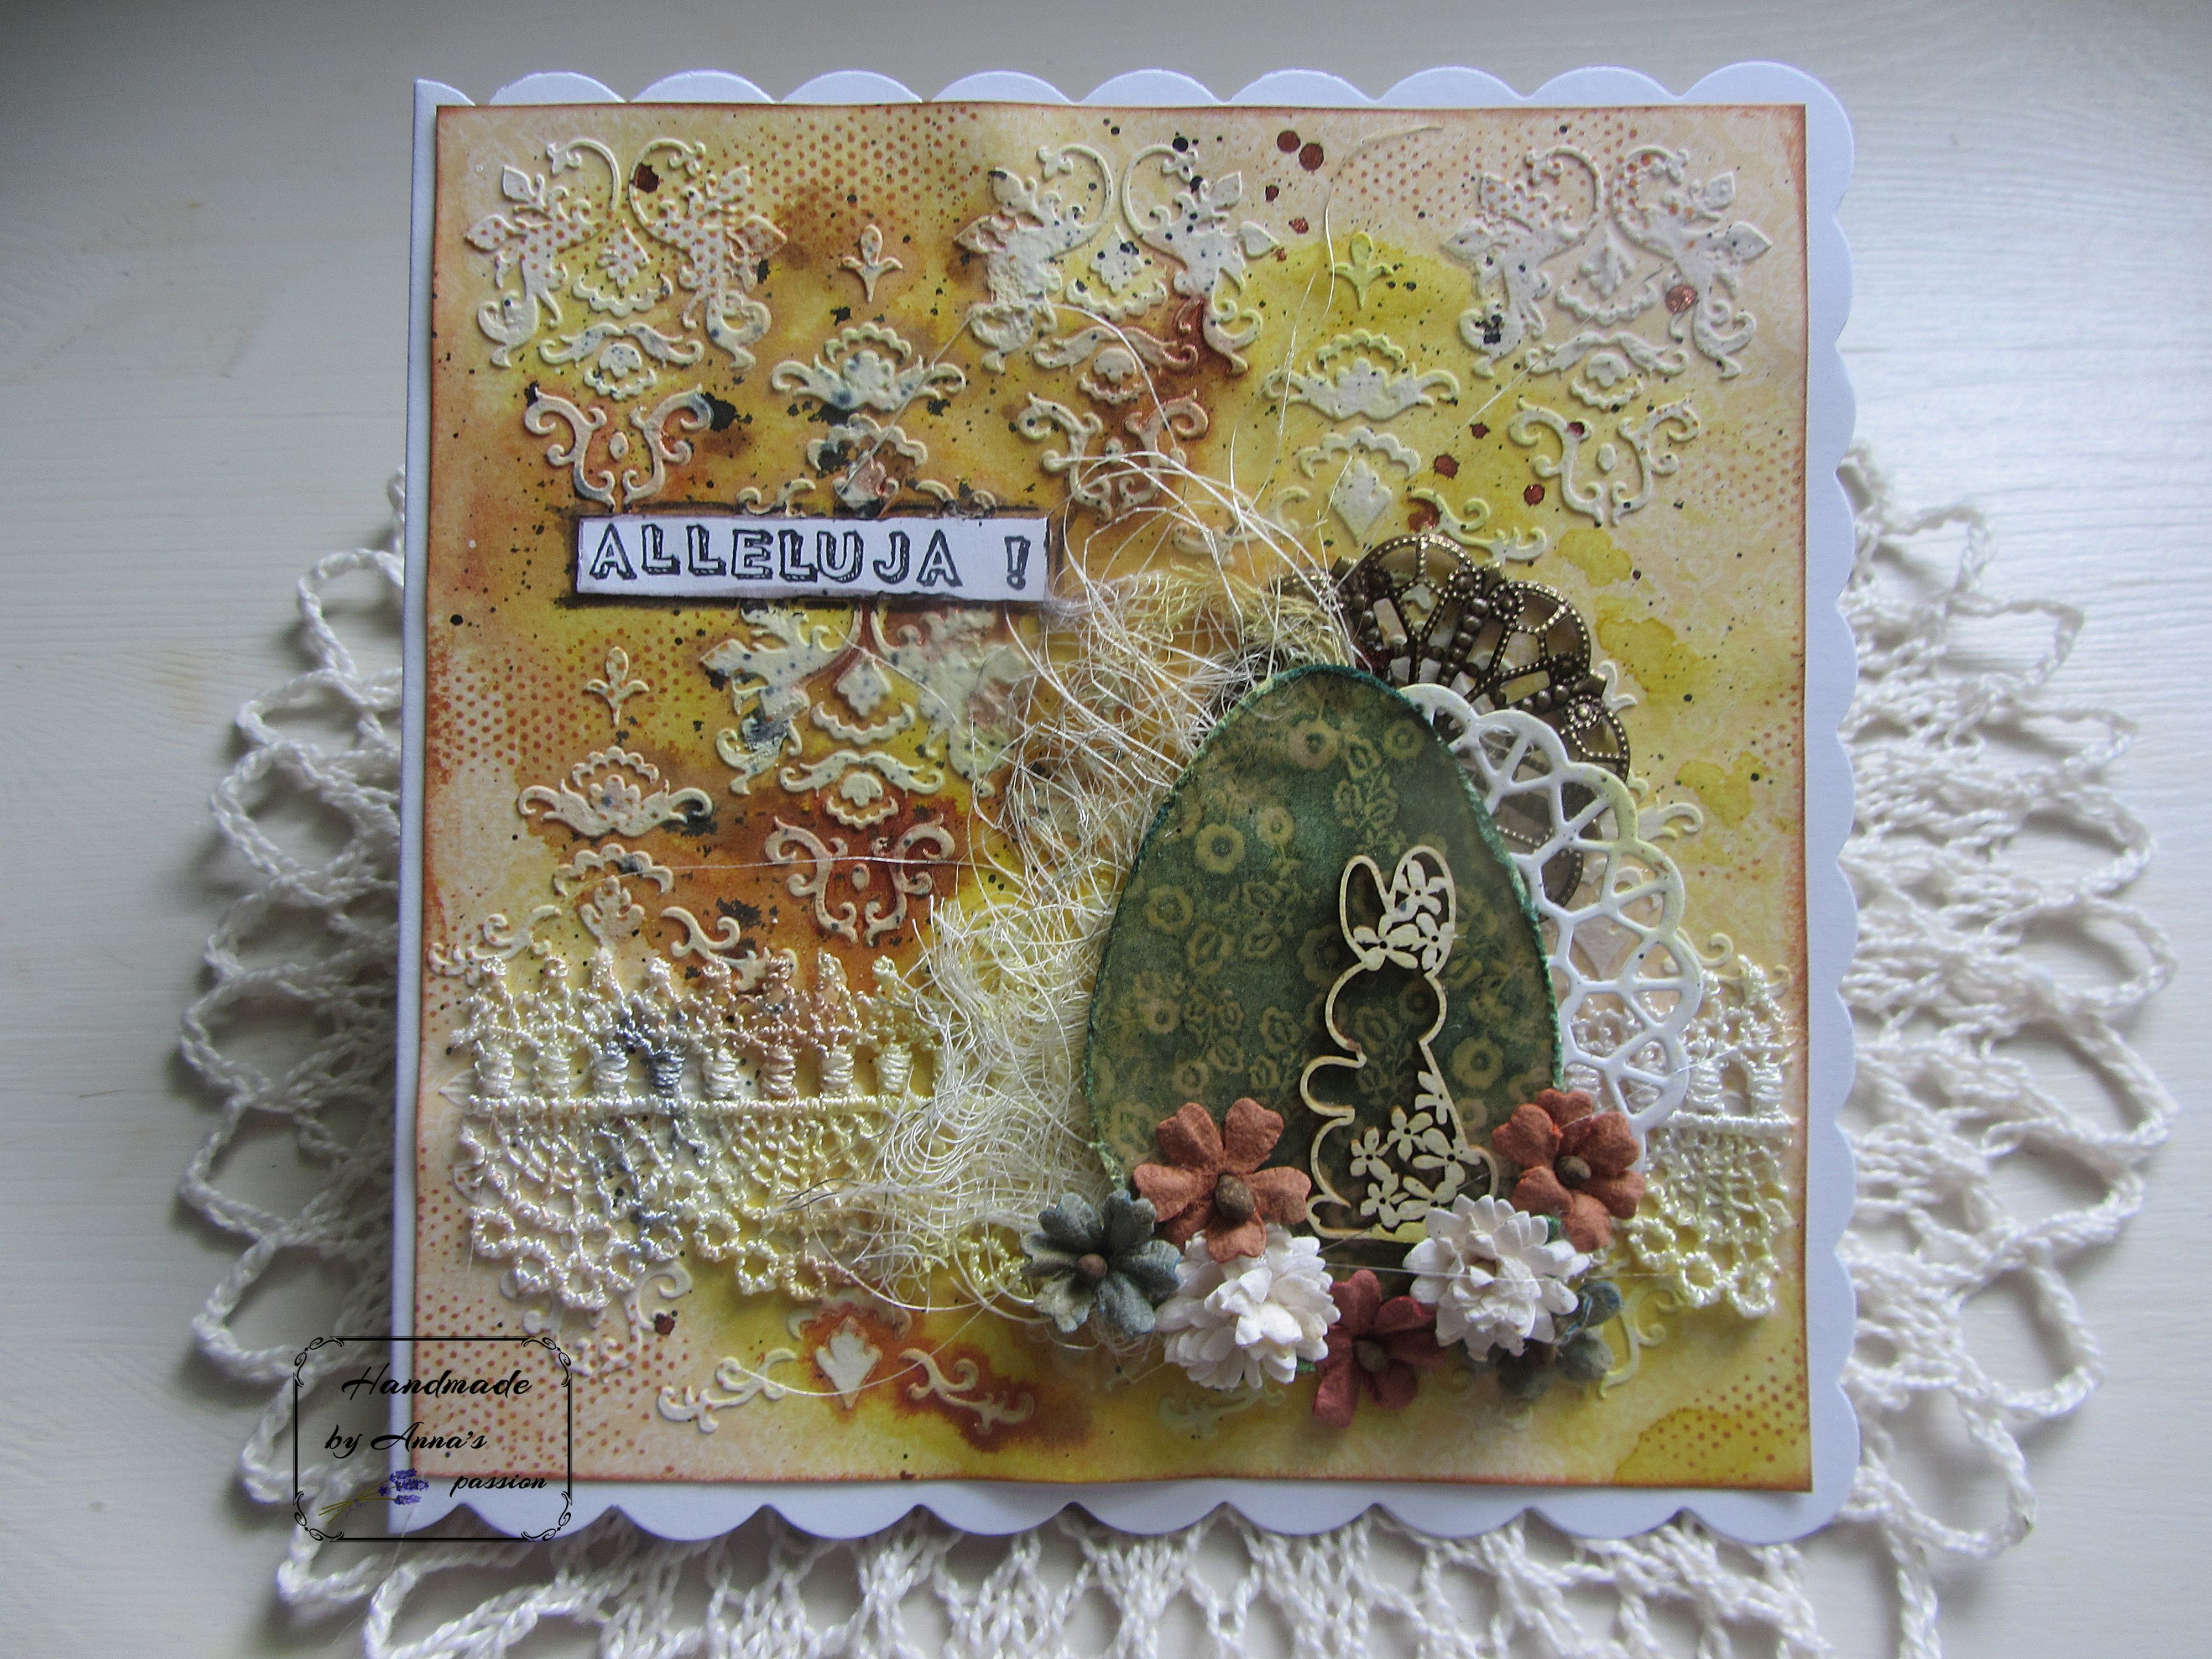 Mixed Media Easter card Mediowa kartka Wielkanocna  #mixedmedia #mixedmediaart #card #cardmaking #handmade #gesso #lindys #lindysstampgang #kaiser #kaisercraft #archivalink #ranger #thecraftersworkshop #tcwstencillove #tcw #lace #tackyglue #metalembellishment #fussycut #egg #scrapiniec #chipboards #paperflowers #49andmarket #diecut #doily #naturalsisal